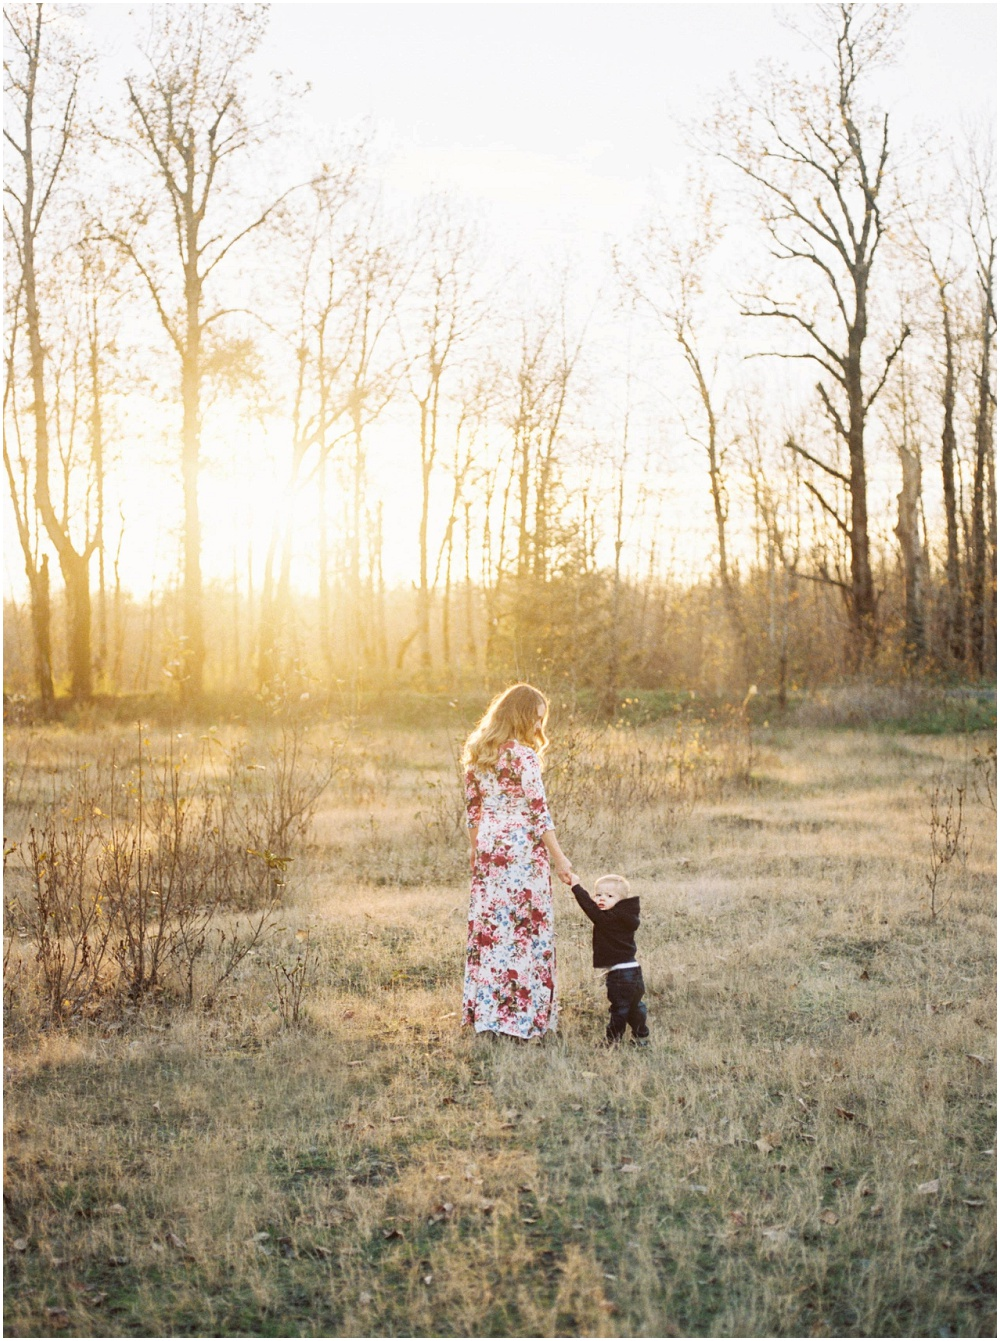 Maternity Photography by Jenni Kupelian and featured on The Fount Collective, a lifestyle publication and community devoted to the art of being a mother 07.jpg